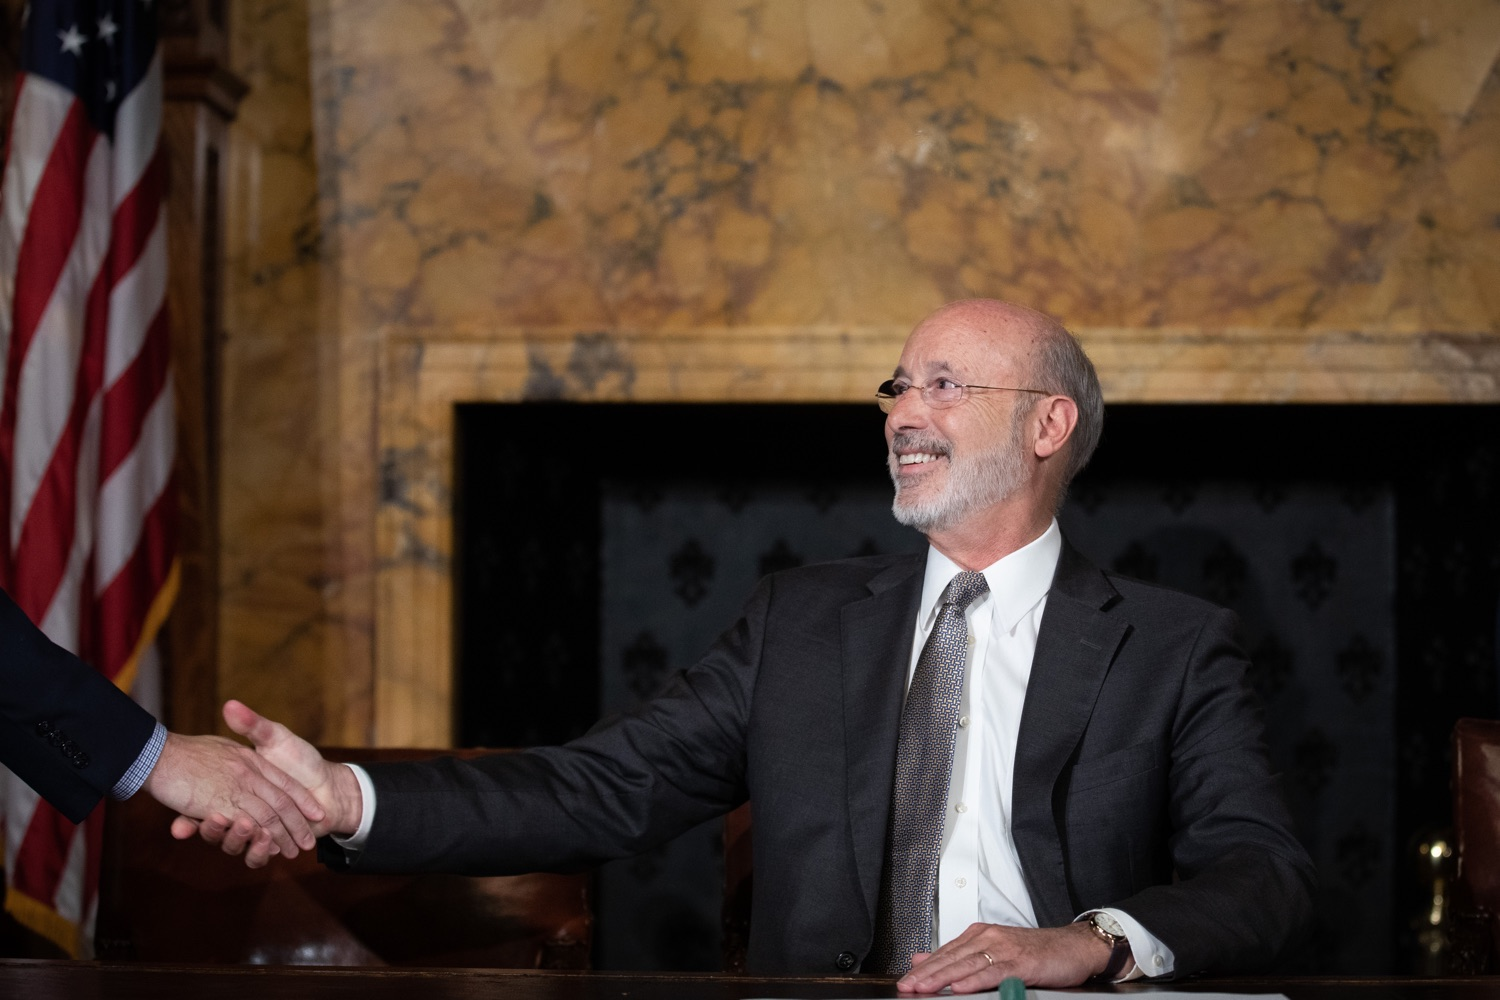 "<a href=""https://filesource.wostreaming.net/commonwealthofpa/photo/17554_gov_voter_reform_bill_dz_016.jpg"" target=""_blank"">⇣ Download Photo<br></a>Harrisburg, PA  Governor Tom Wolf speaks at the Election Reform Bill signing. Governor Wolf made voting more convenient and secure by signing Act 77 of 2019, the most significant improvement to Pennsylvanias elections in more than 80 years. The bipartisan compromise legislation takes effect for the April 2020 primary election and makes Pennsylvania a national leader with voter-friendly election reforms."